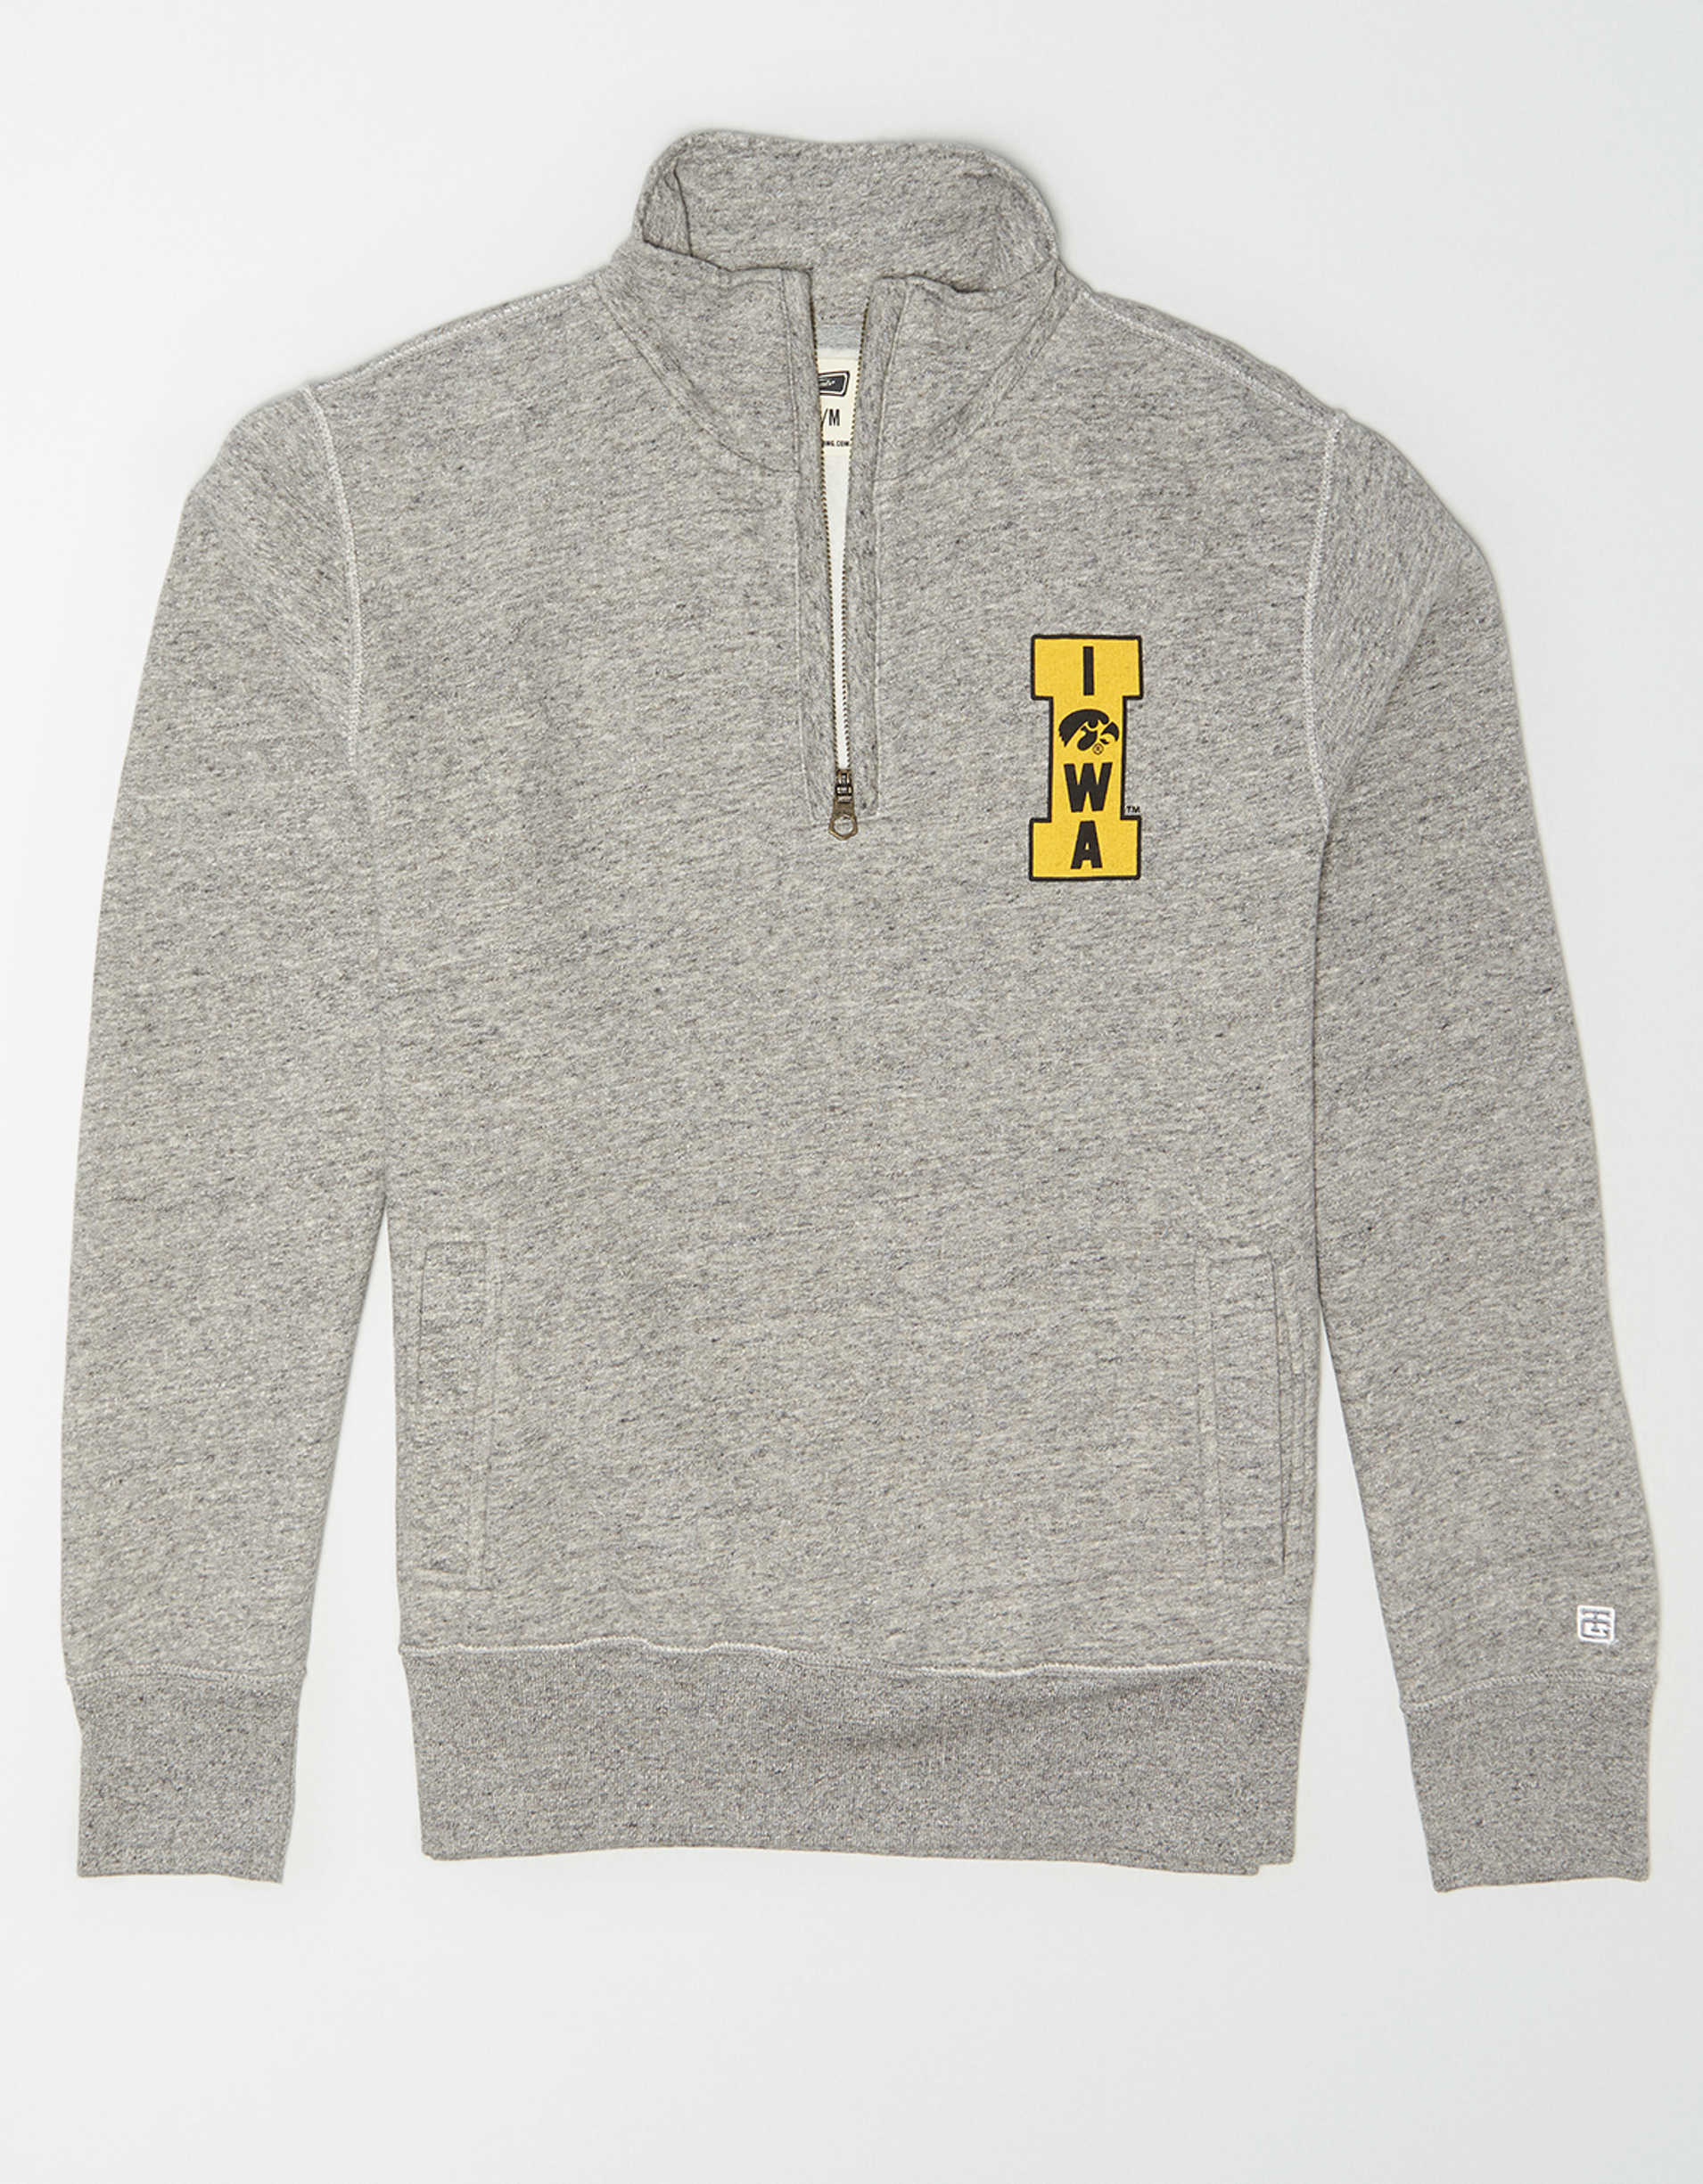 Tailgate Men's Iowa Hawkeyes Quarter Zip Sweatshirt